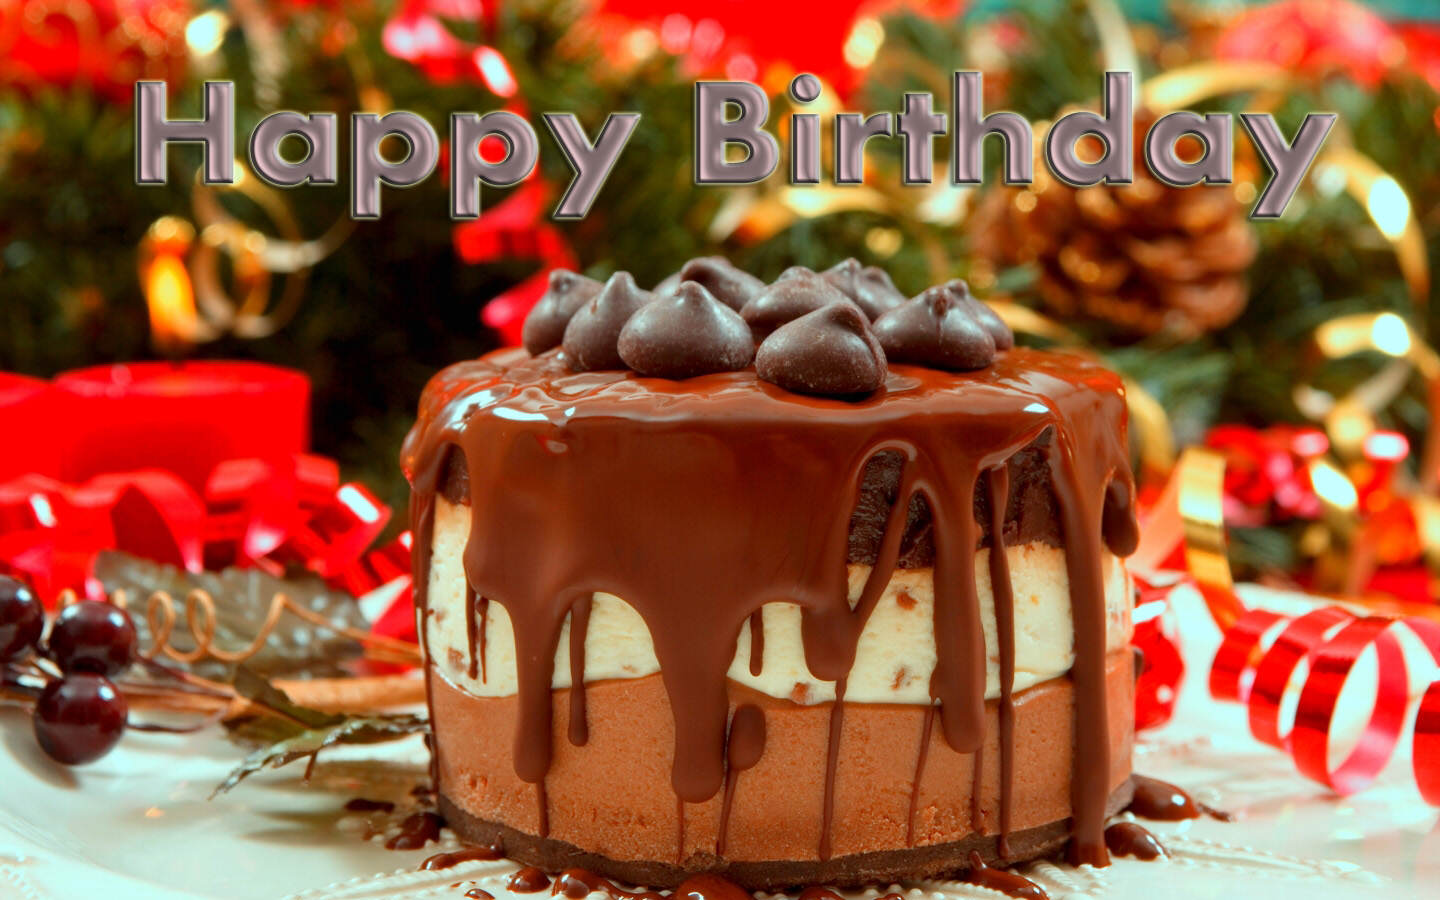 new birthday images free download ; happy-birthday-wishes-cake--wallpapers-and-backgrounds-721